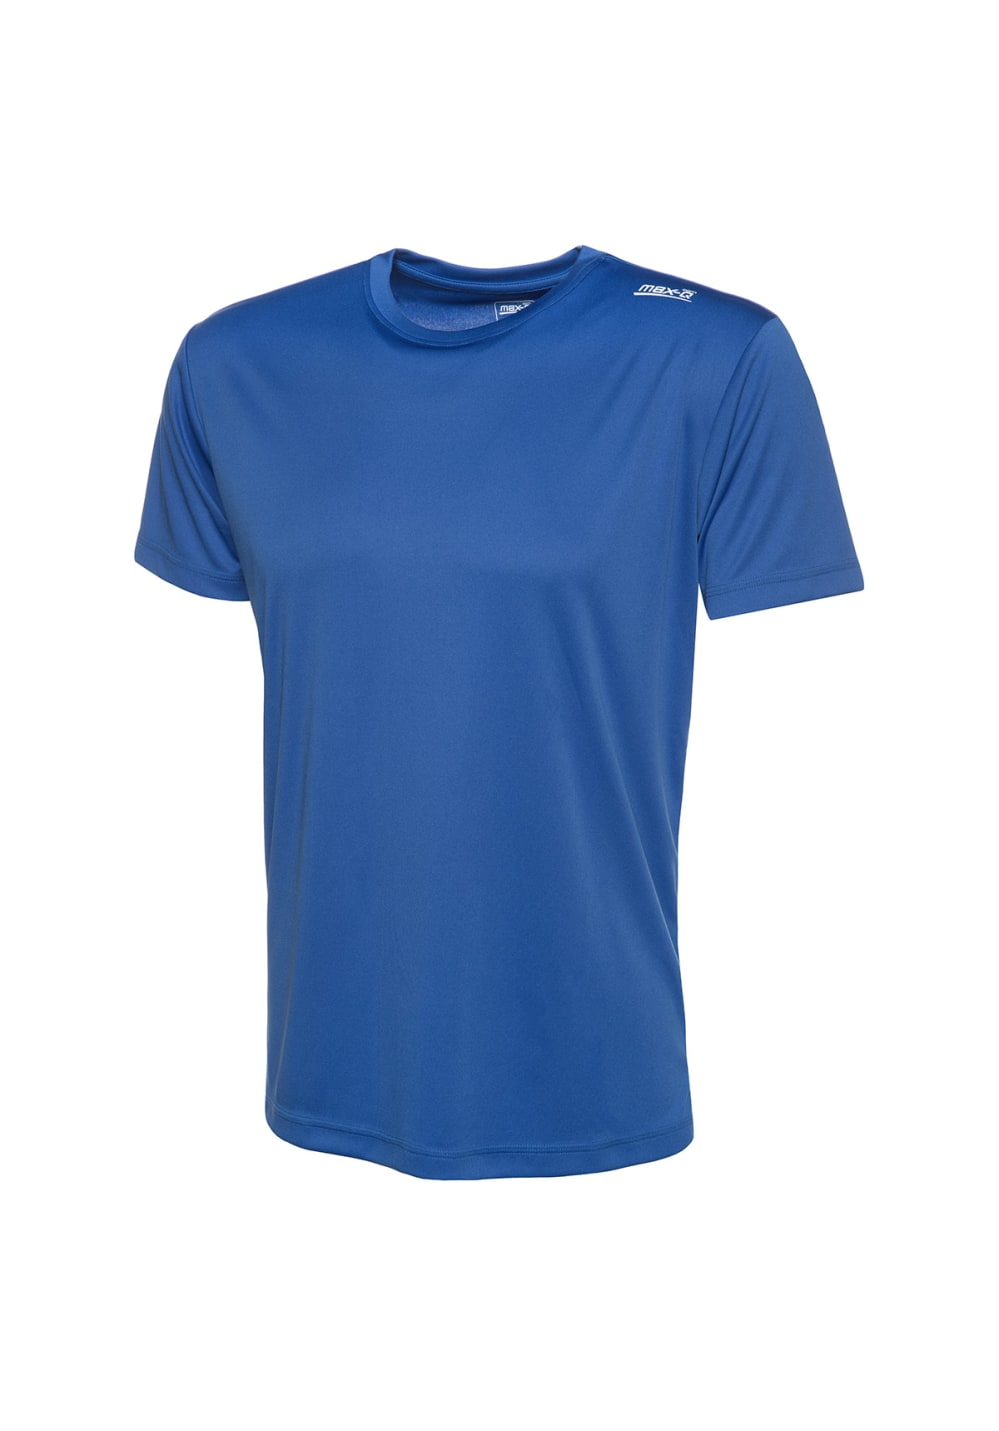 max-Q.com Core Running Shirt Hommes Maillot course